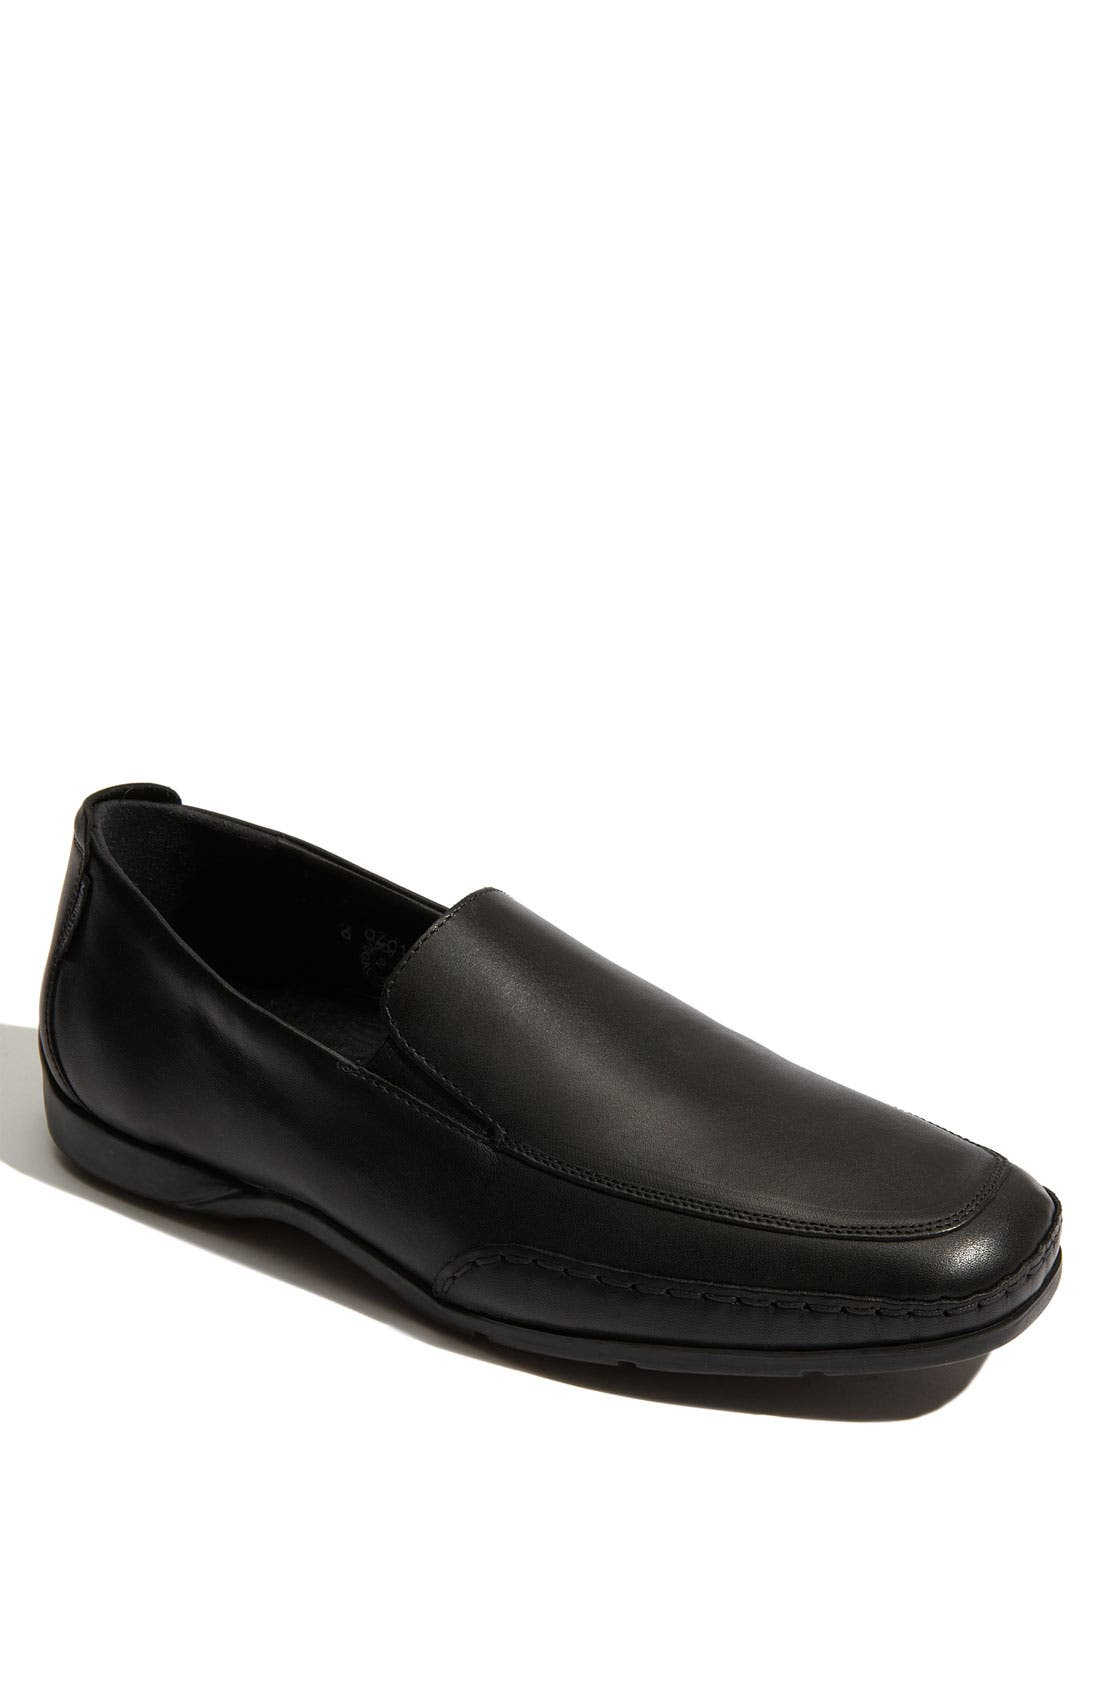 Alternate Image 1 Selected - Mephisto 'Edlef' Slip-On (Men)